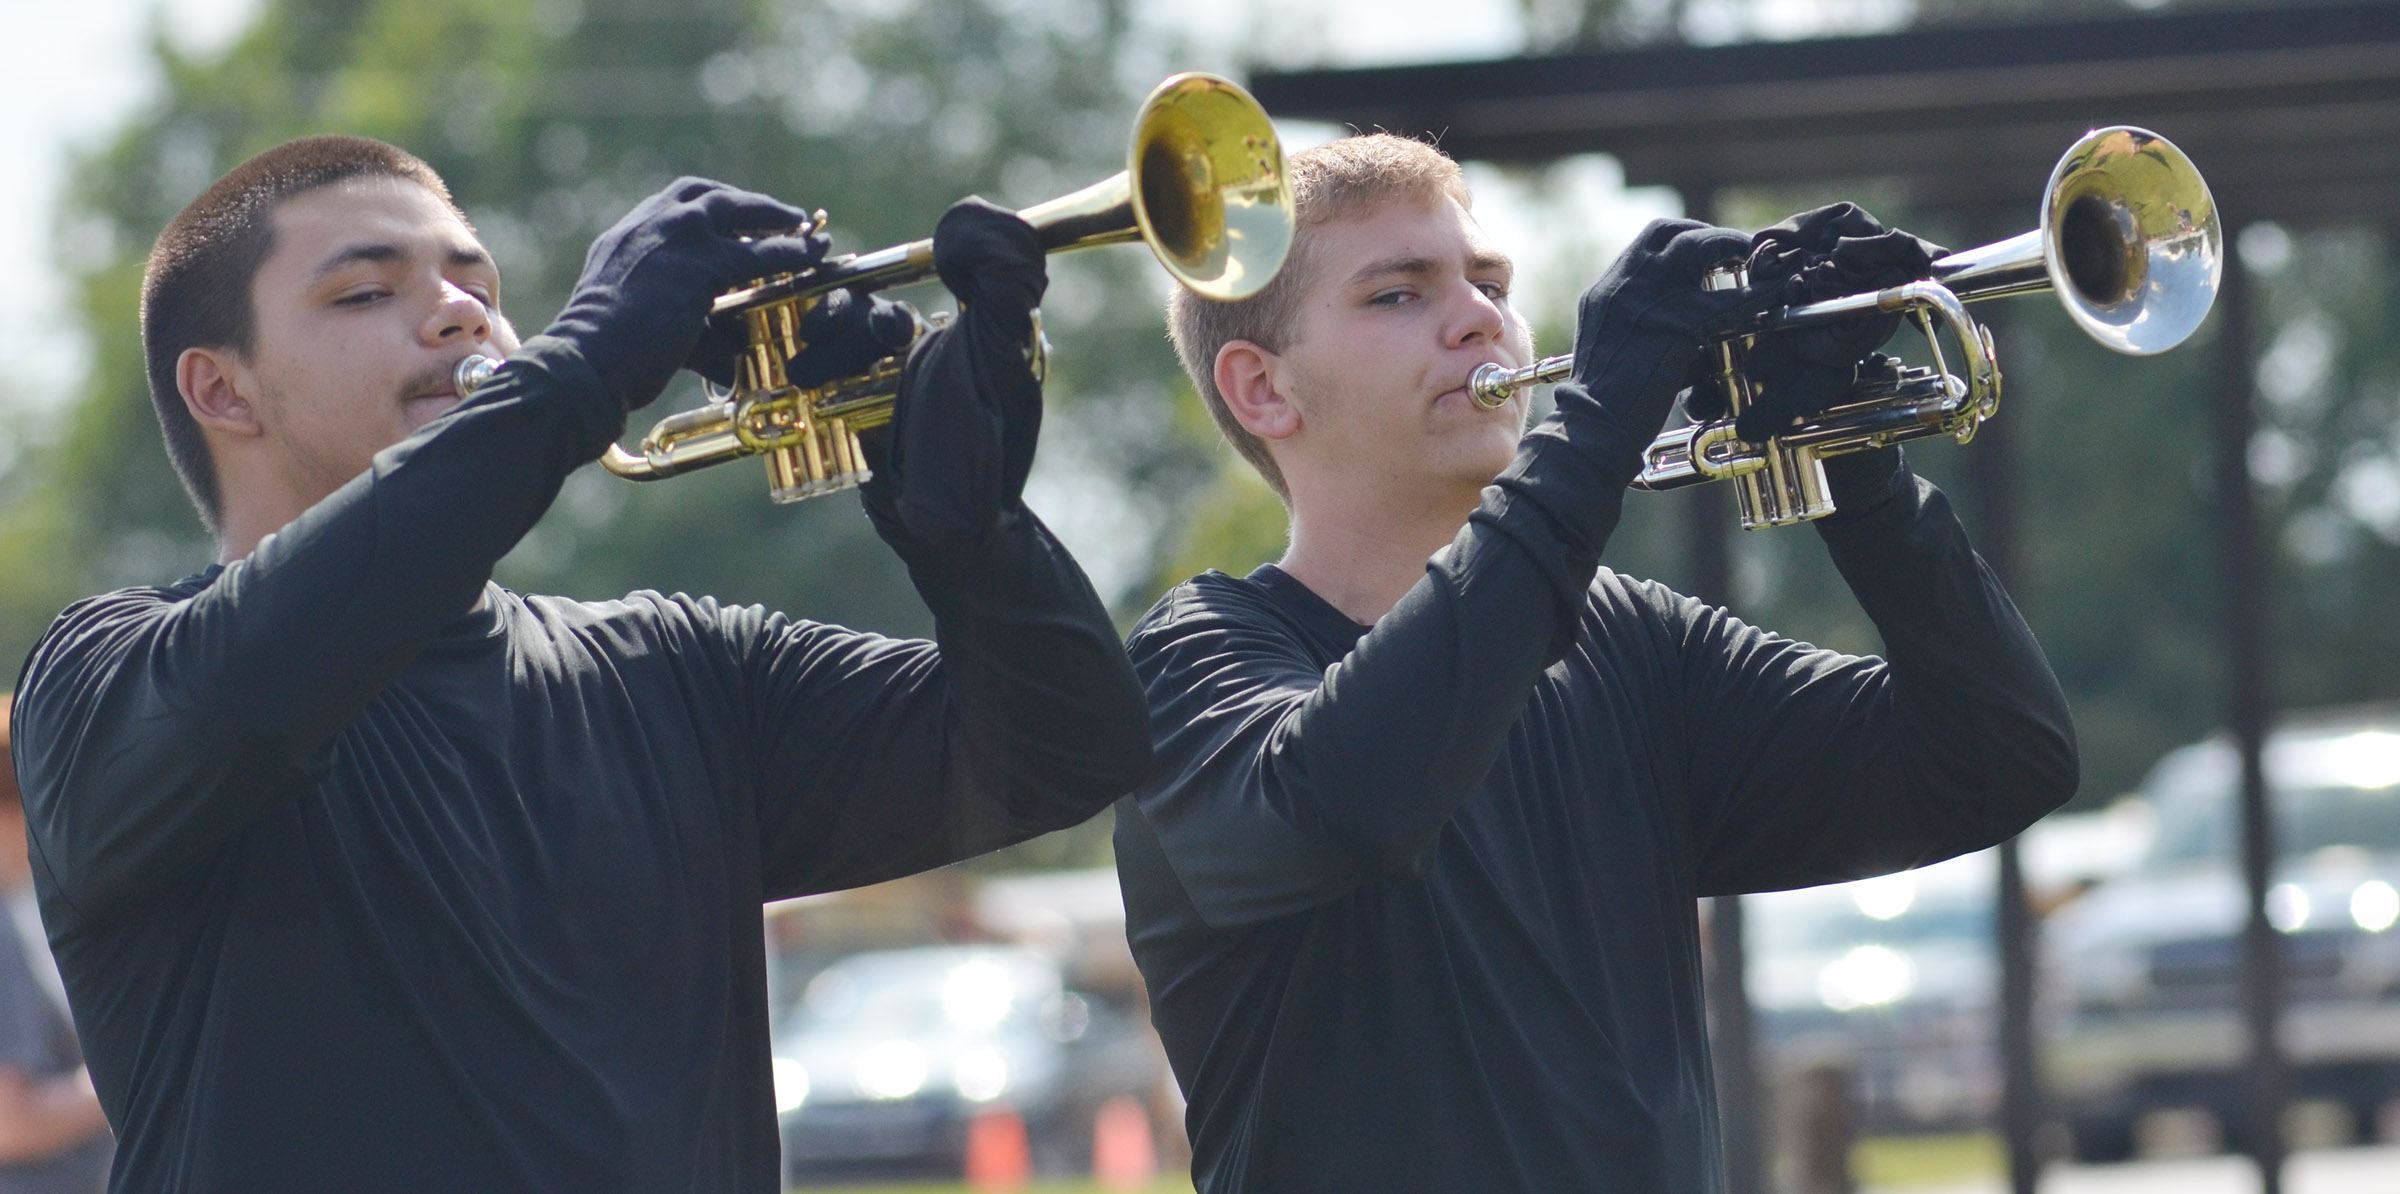 CHS junior Nick Cowan, at left, and sophomore Brandon Greer play trumpet.